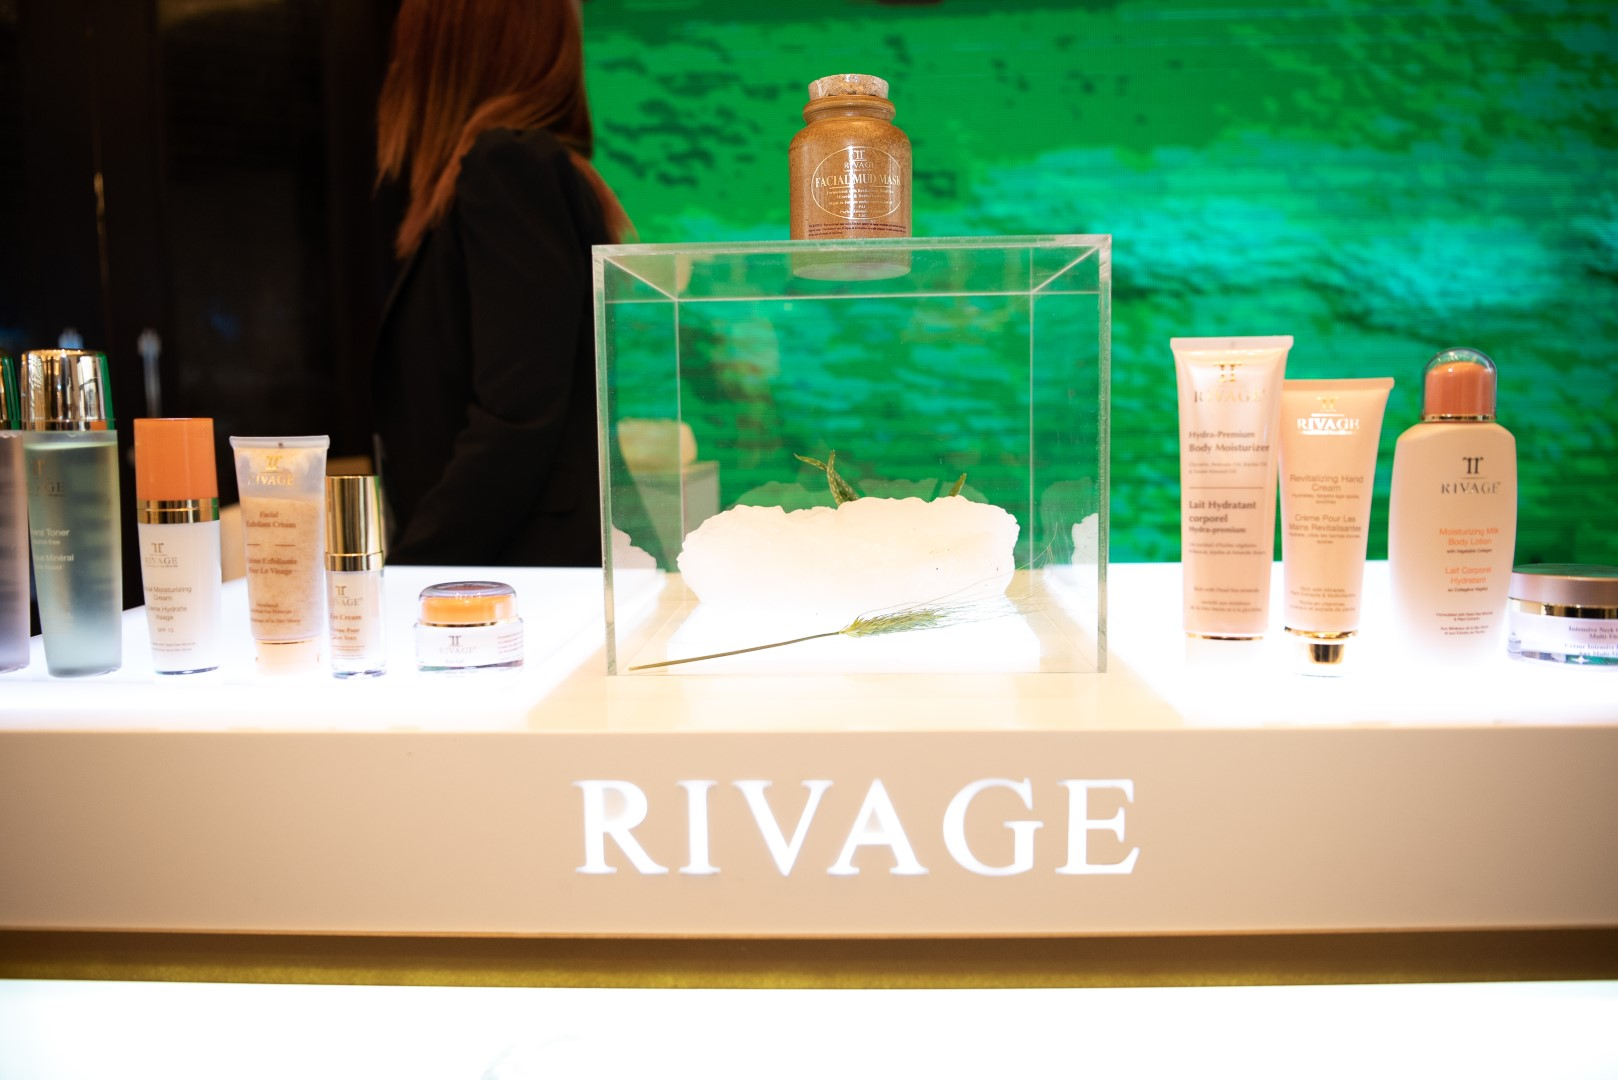 AMMAN, JORDAN - MARCH 29: Rivage skin care products are displayed at Jordan Fashion Week 019 at the Kempinski Amman on March 29, 2019 in Amman, Jordan (Photo by Arun Nevader/Getty Images for Jordan Fashion Week)